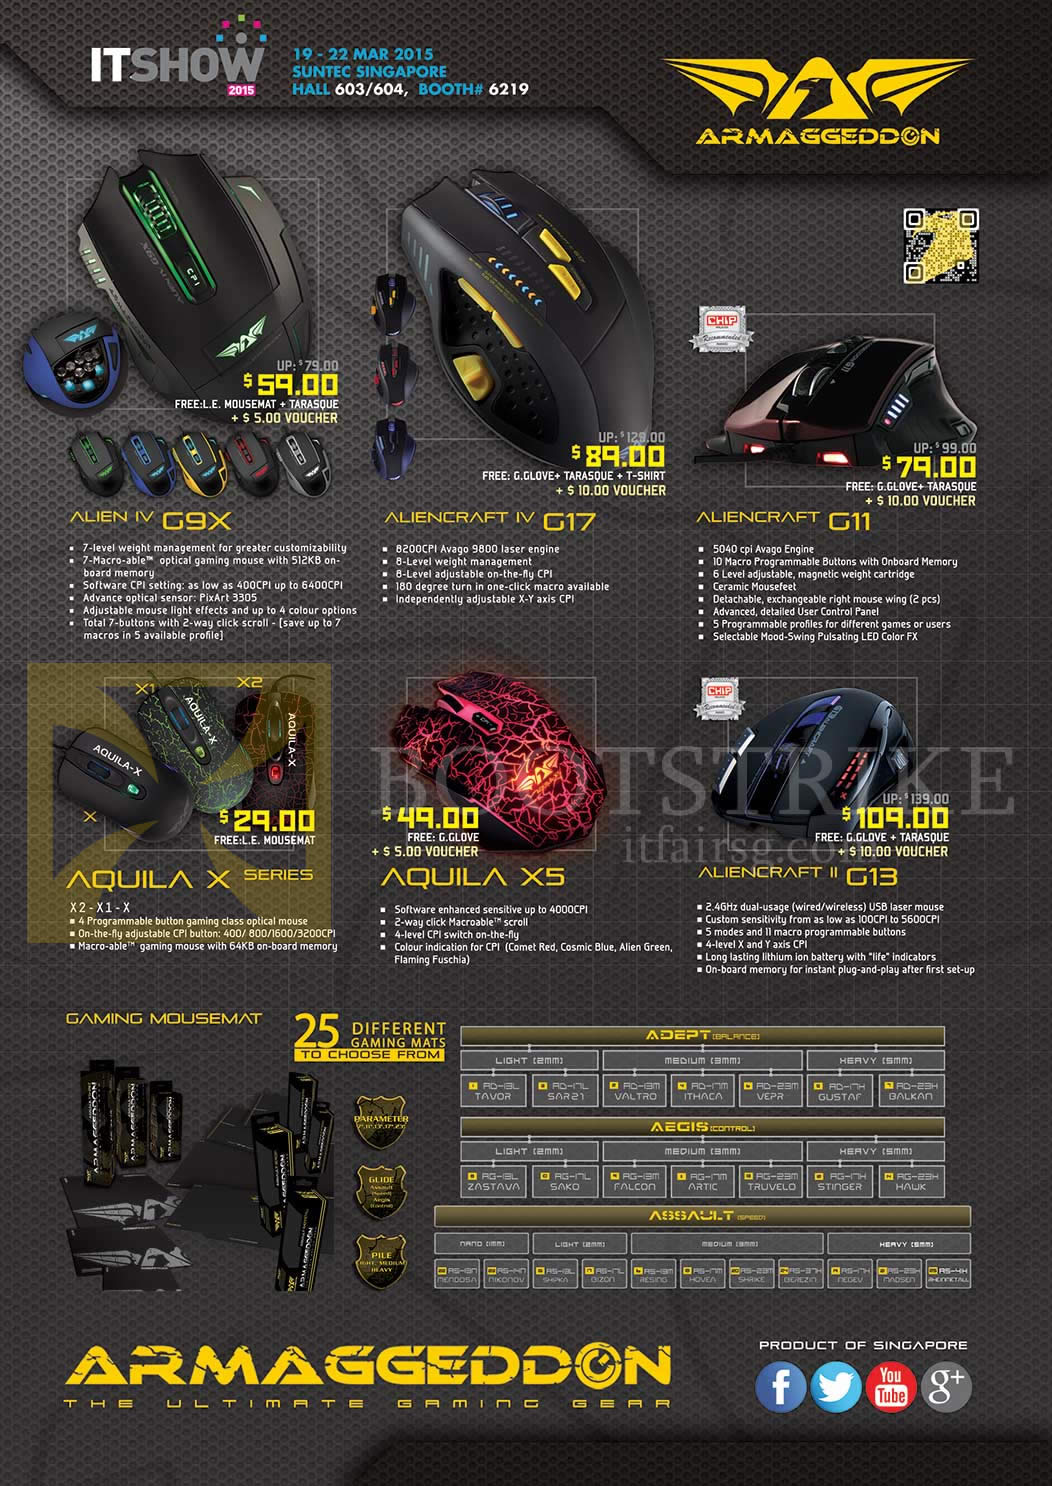 IT SHOW 2015 price list image brochure of Armaggeddon Mouse, Mouse Mats, Alien IV G9X, Aliencraft IV G17, G11, II G13, Aquila X Series, X5